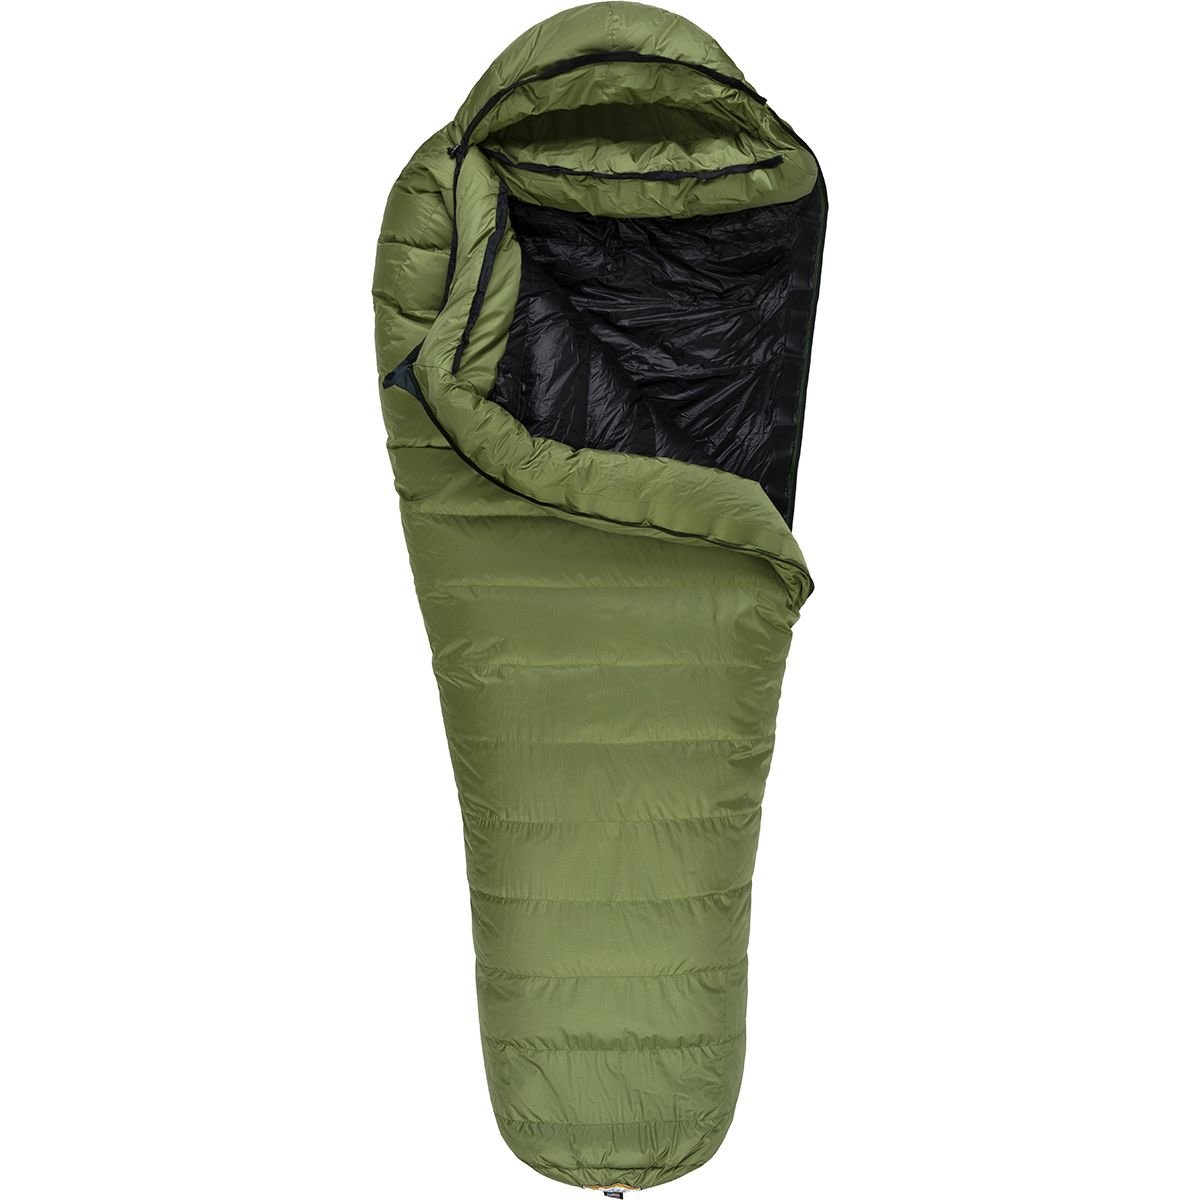 An image of Western Mountaineering Badger Men's Sleeping Bag